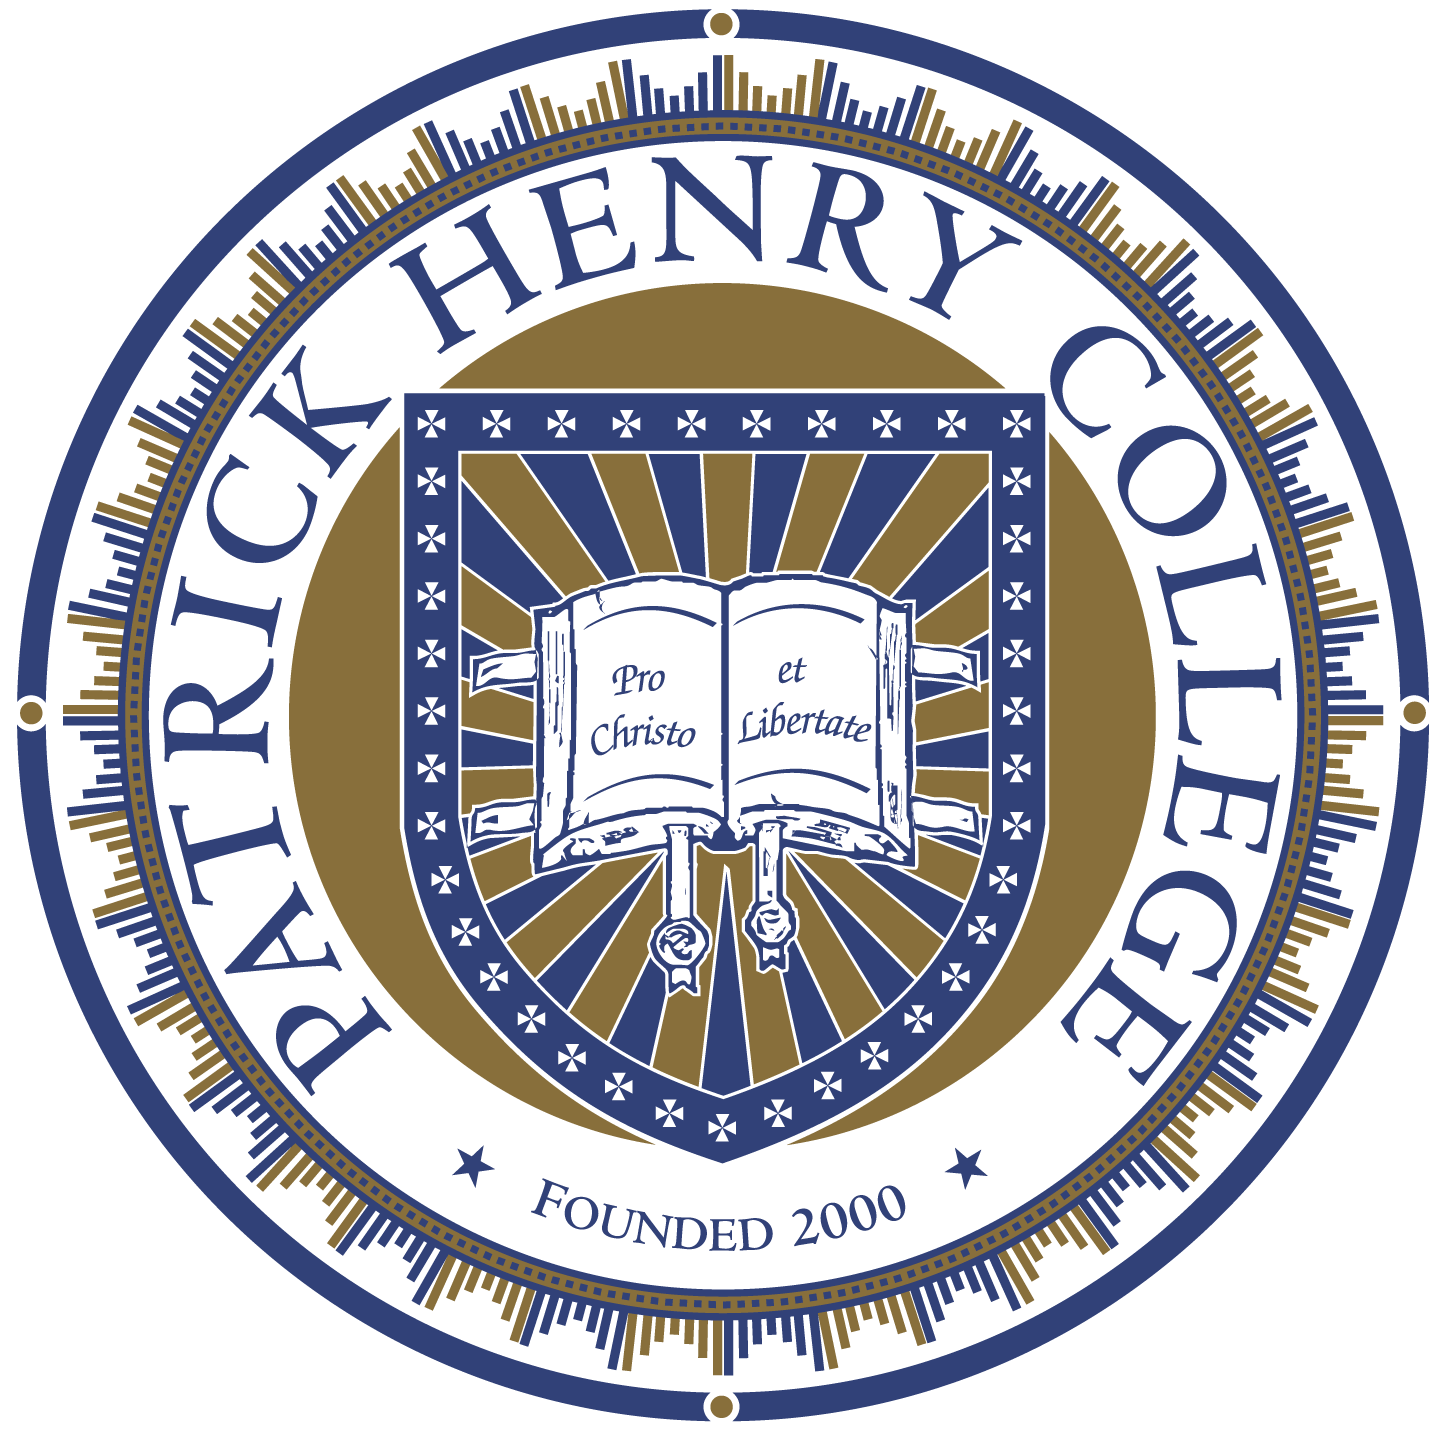 Patrick Henry College Seal